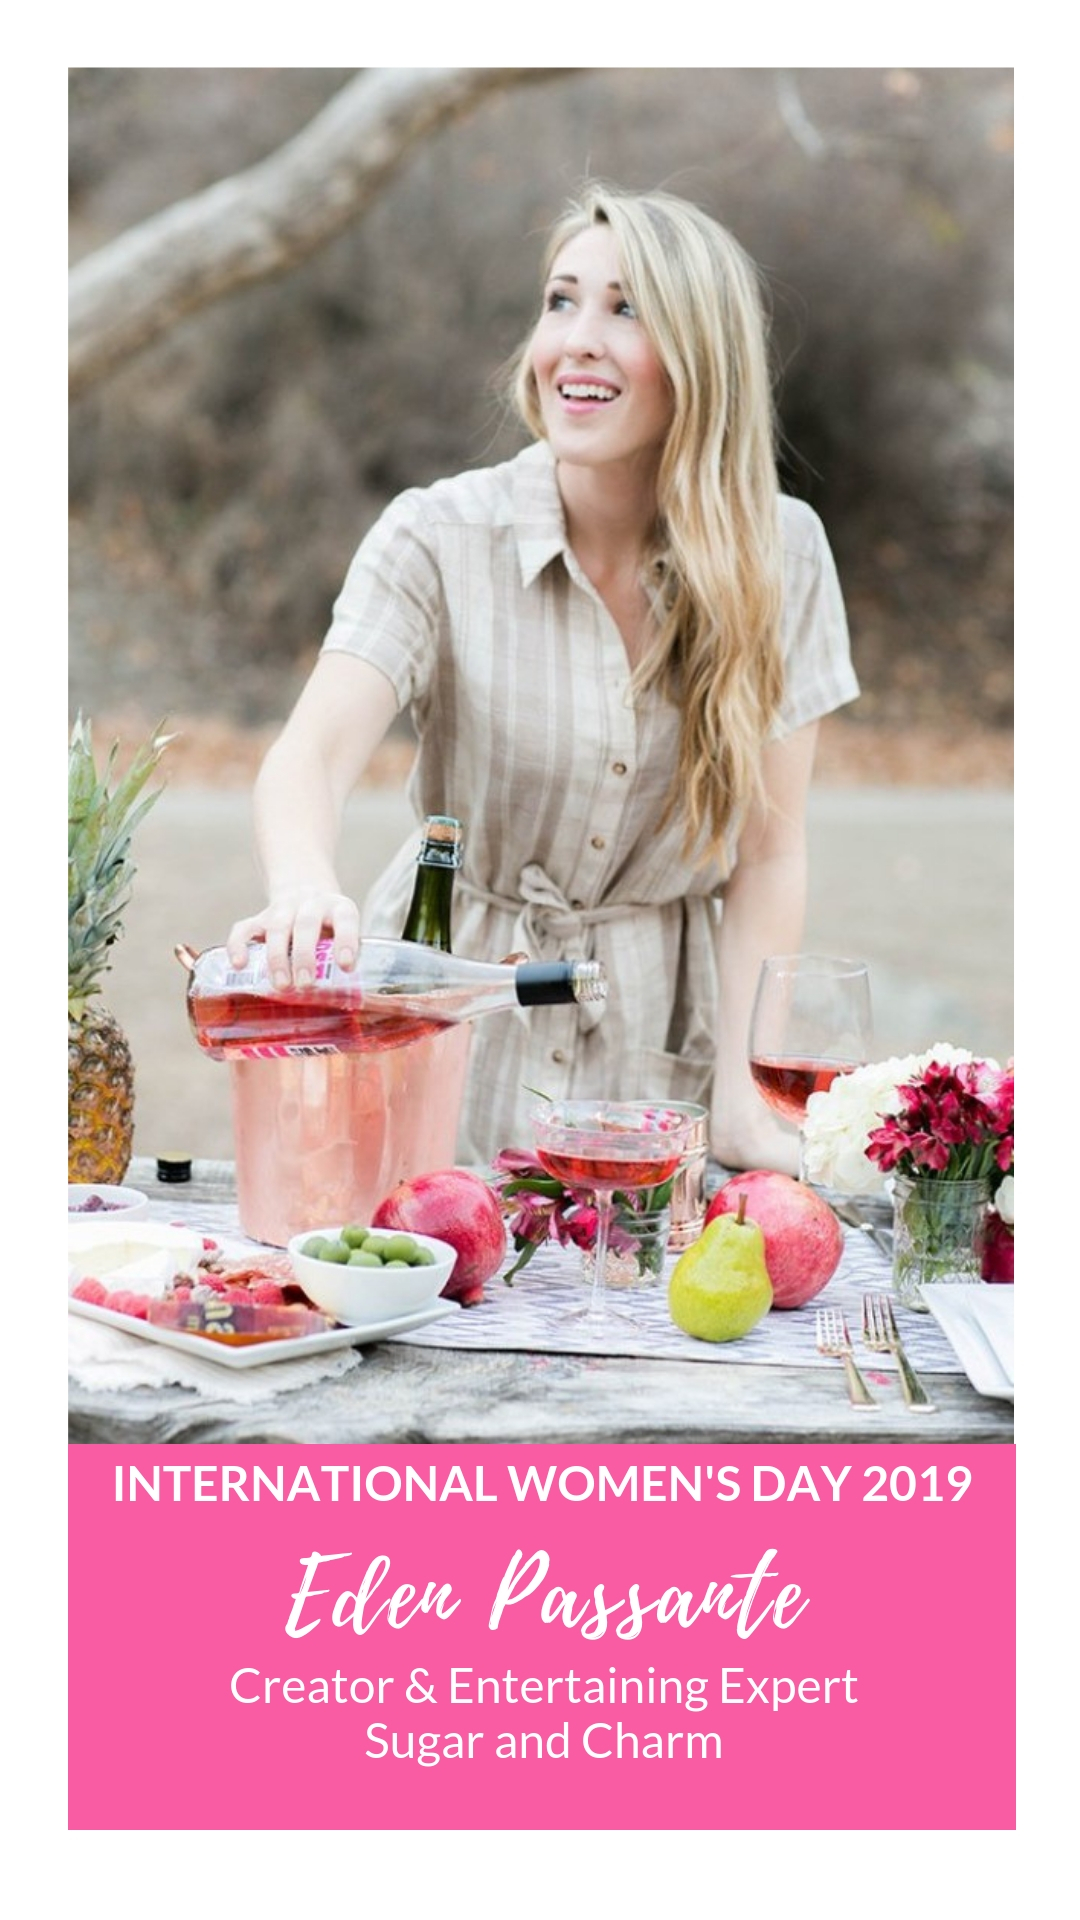 International Women's Day - Eden Passante